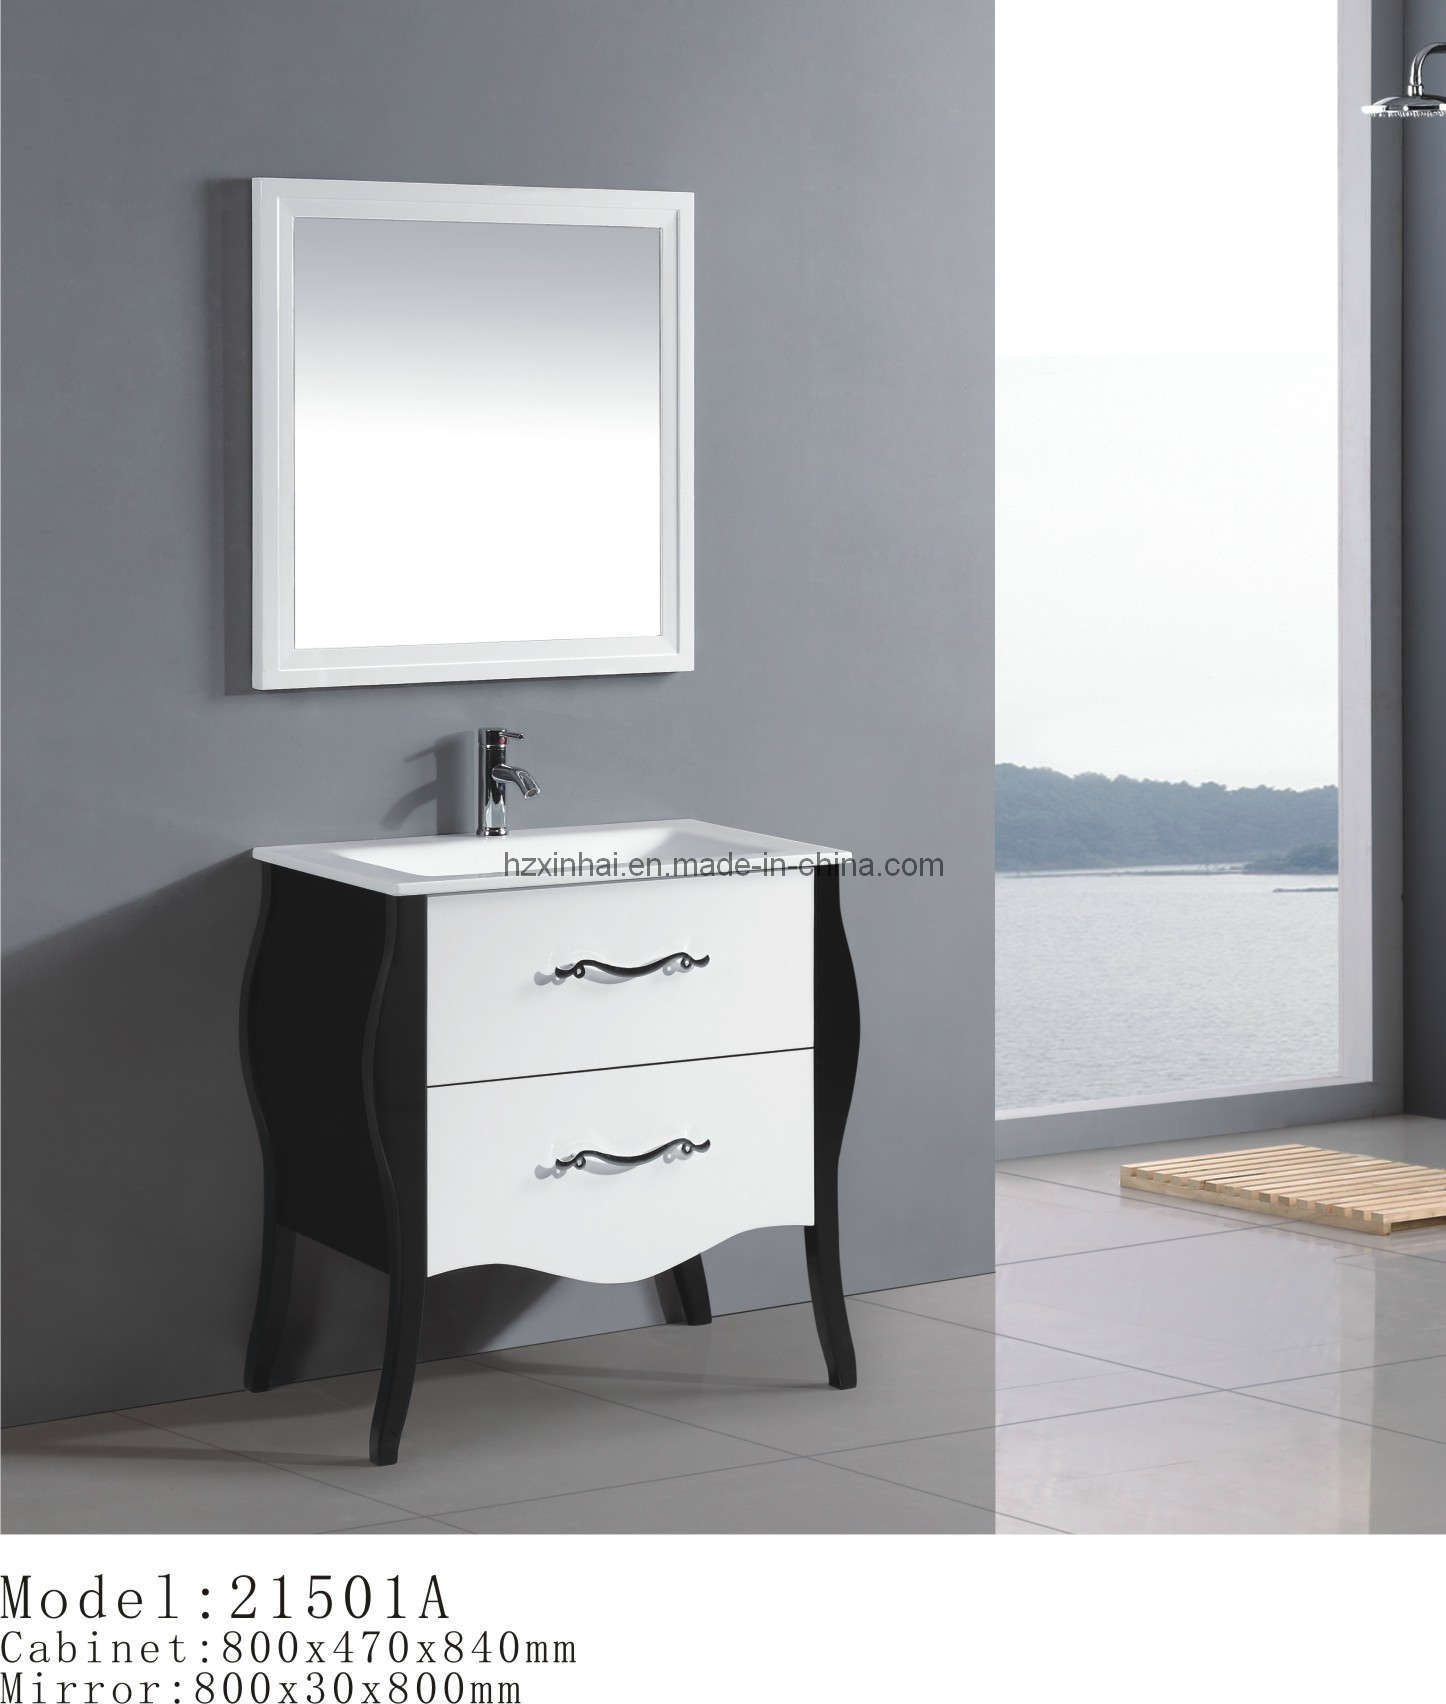 China solid wood bathroom cabinet 21501a china bathroom cabinet bathroom vanity Solid wood bathroom vanities cabinets